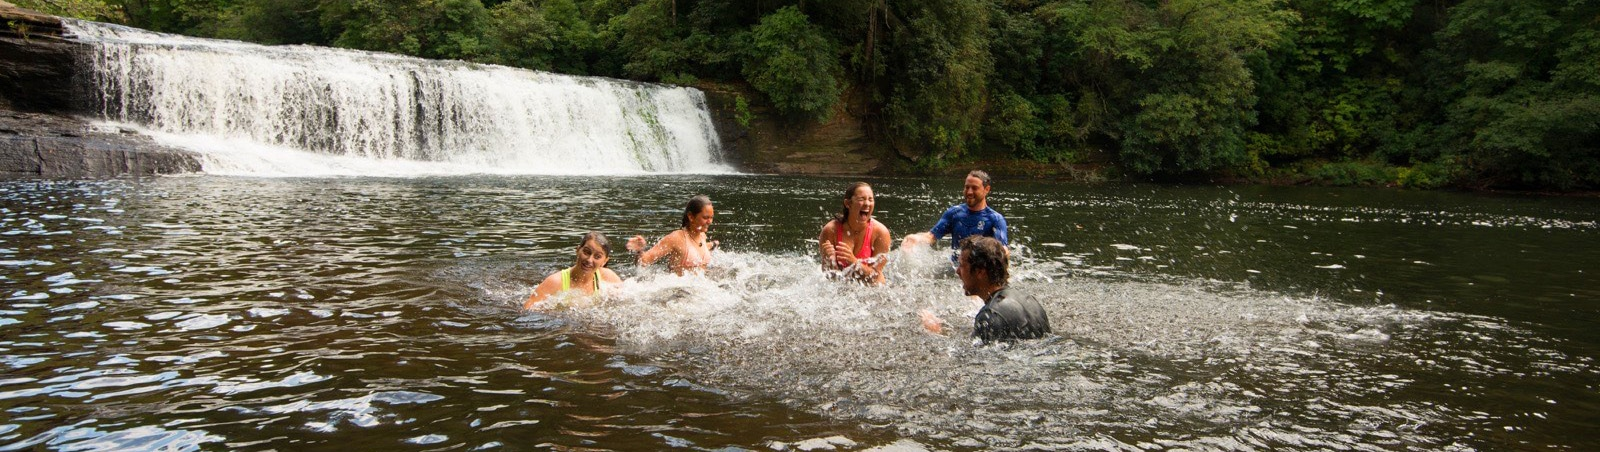 students swimming in front of waterfall